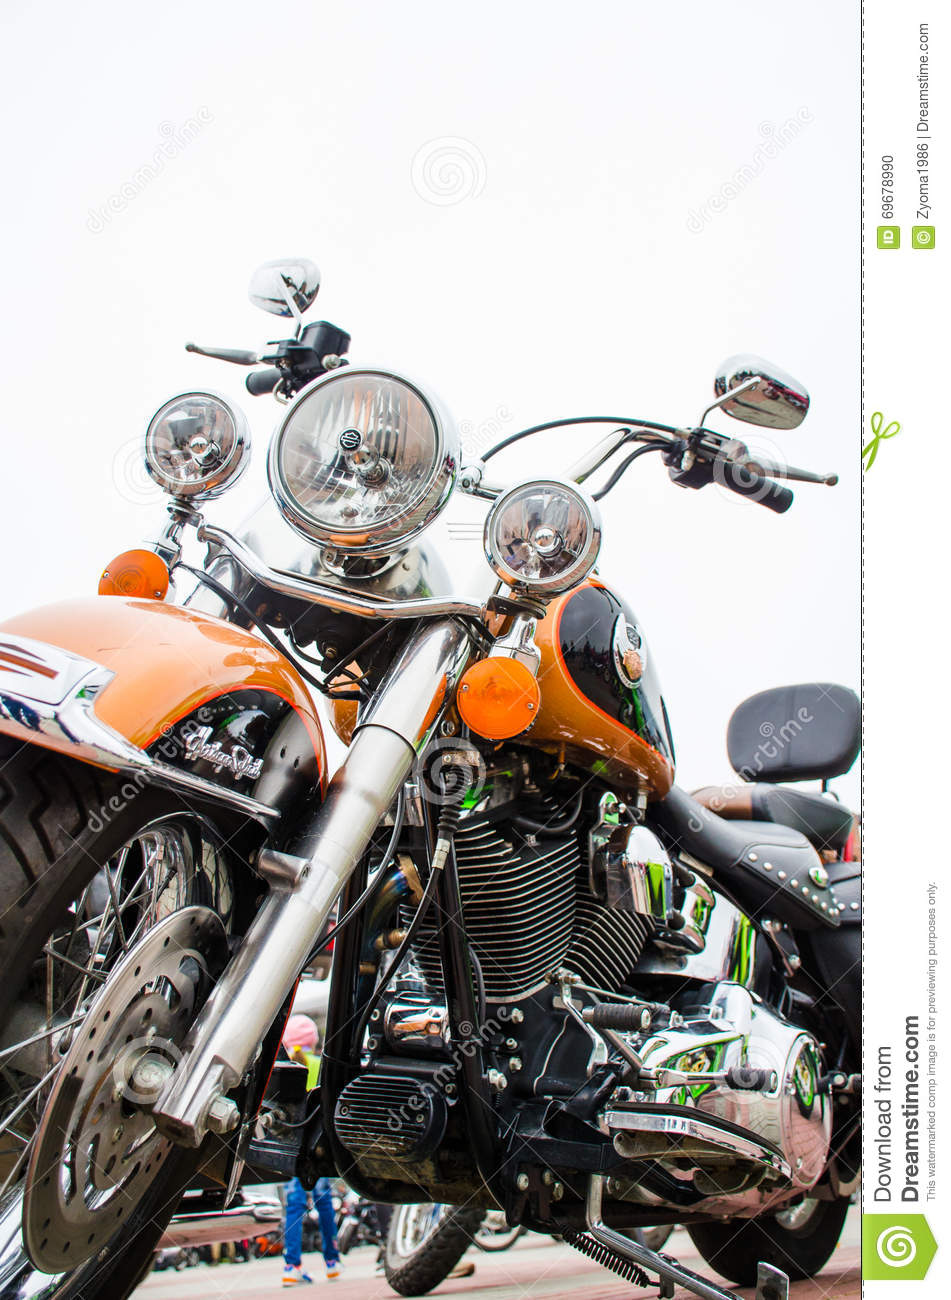 Classic motorcycle photography